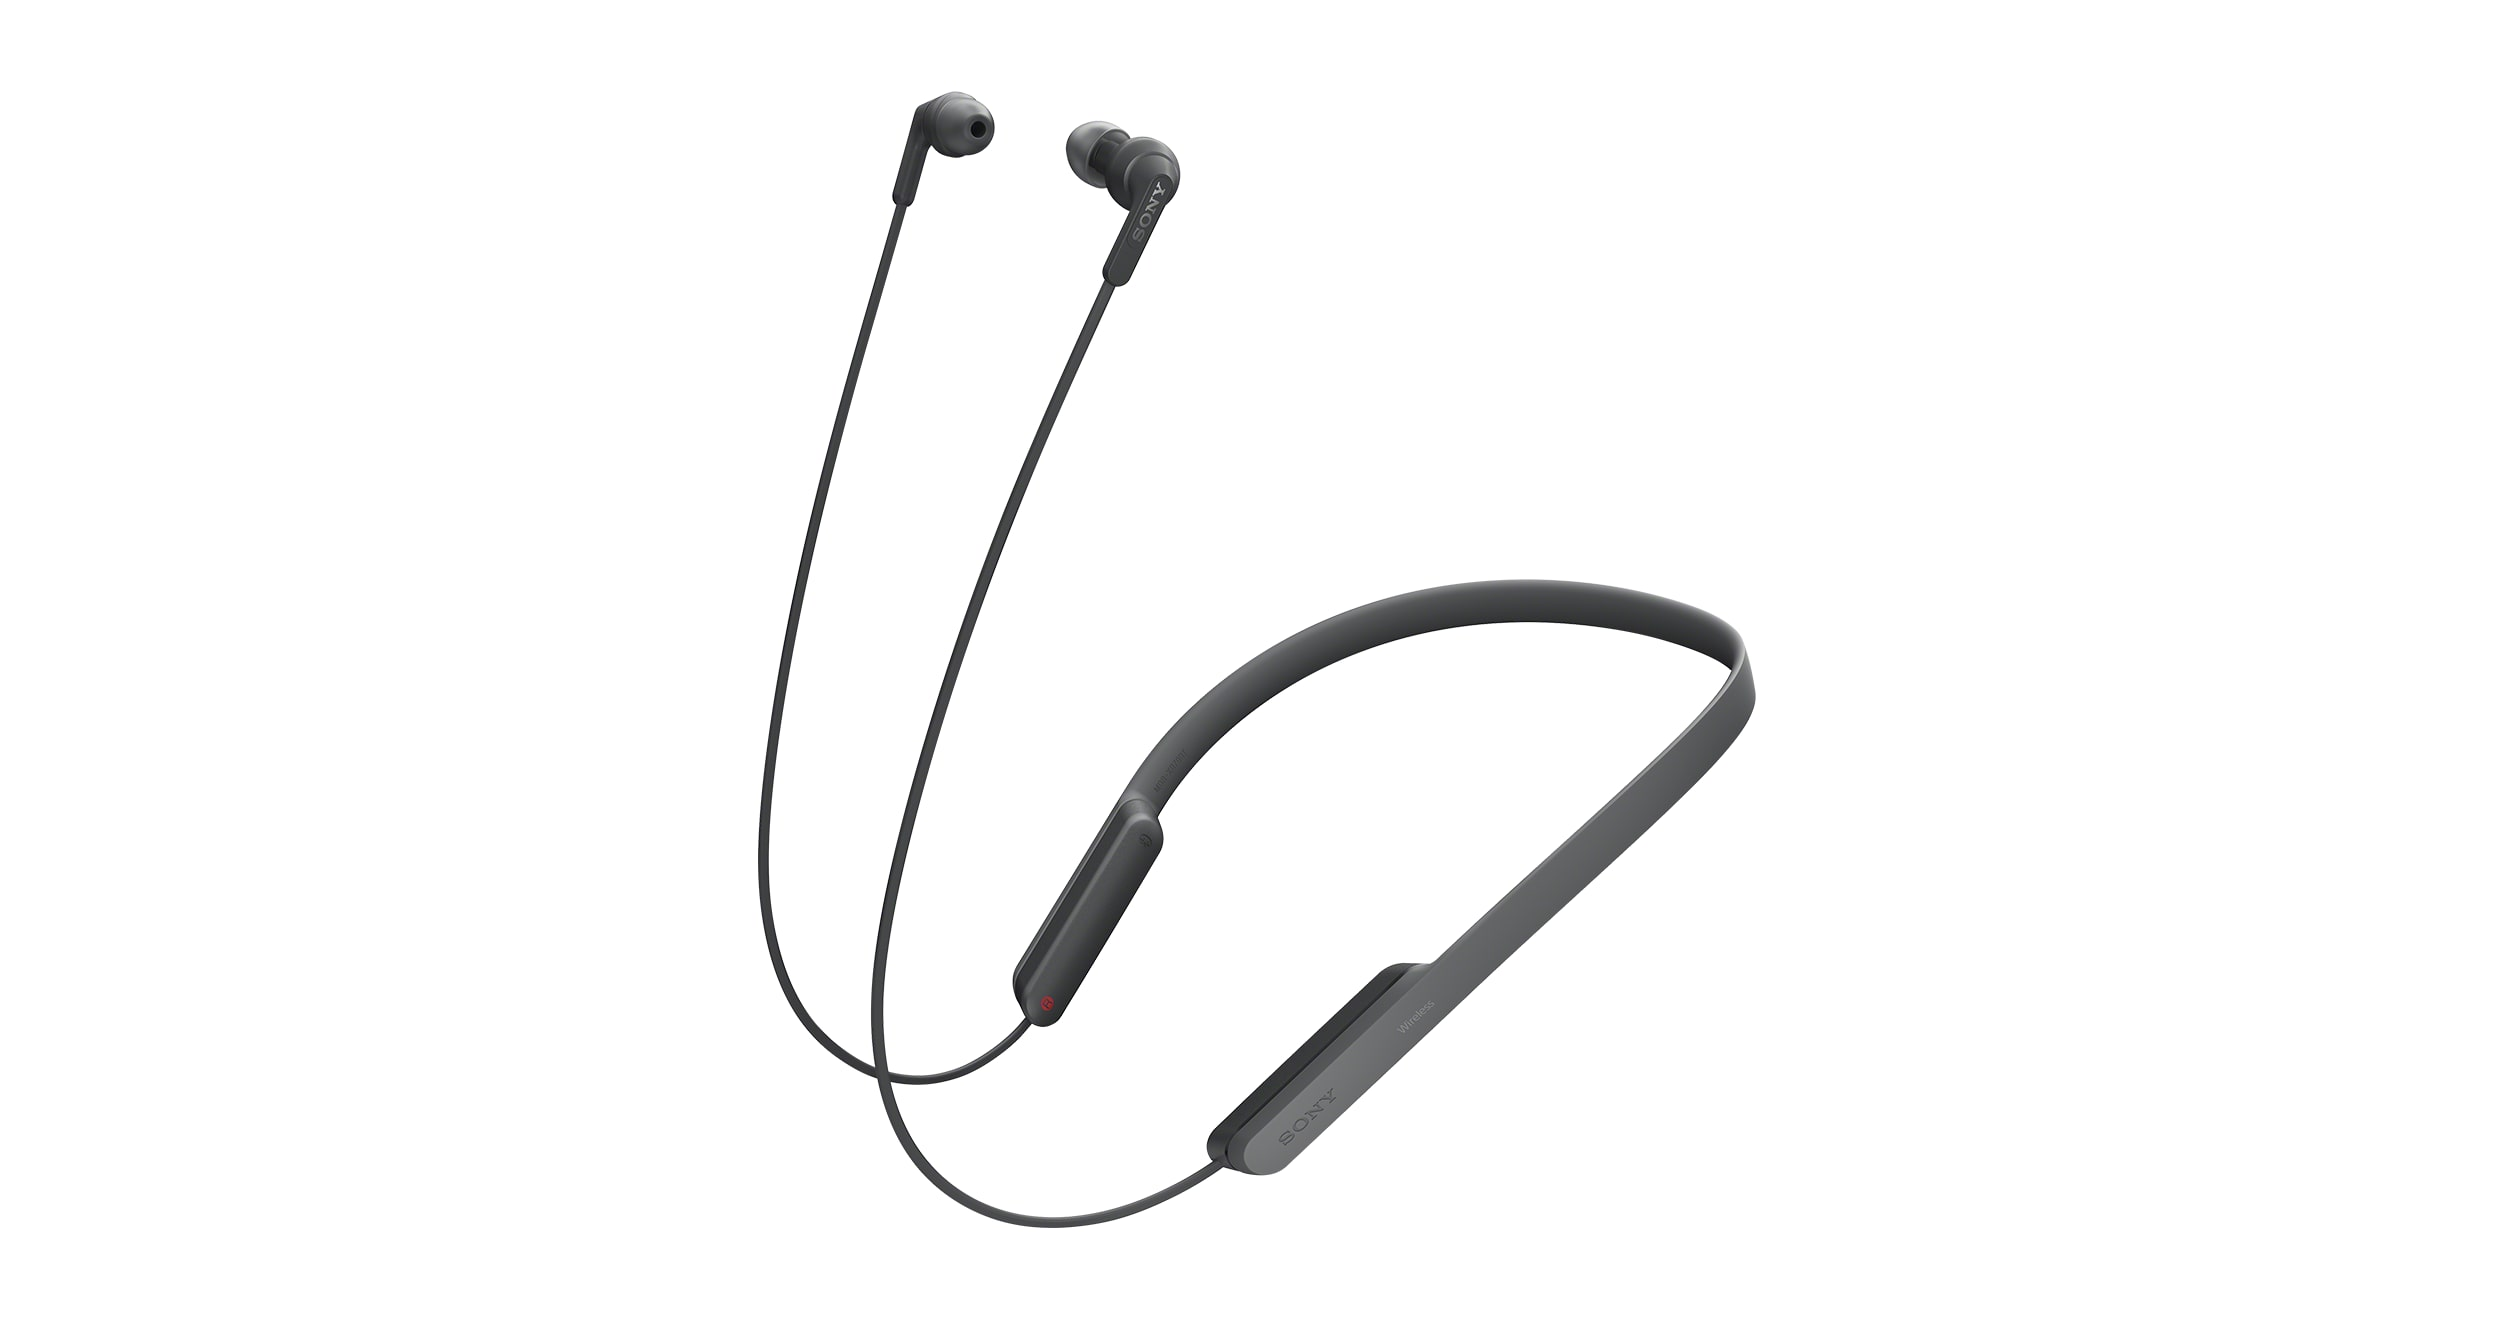 d9b3e9cf35d Bluetooth Wrap Around In-Ear Sports Headphones | MDR-XB70BT | Sony US